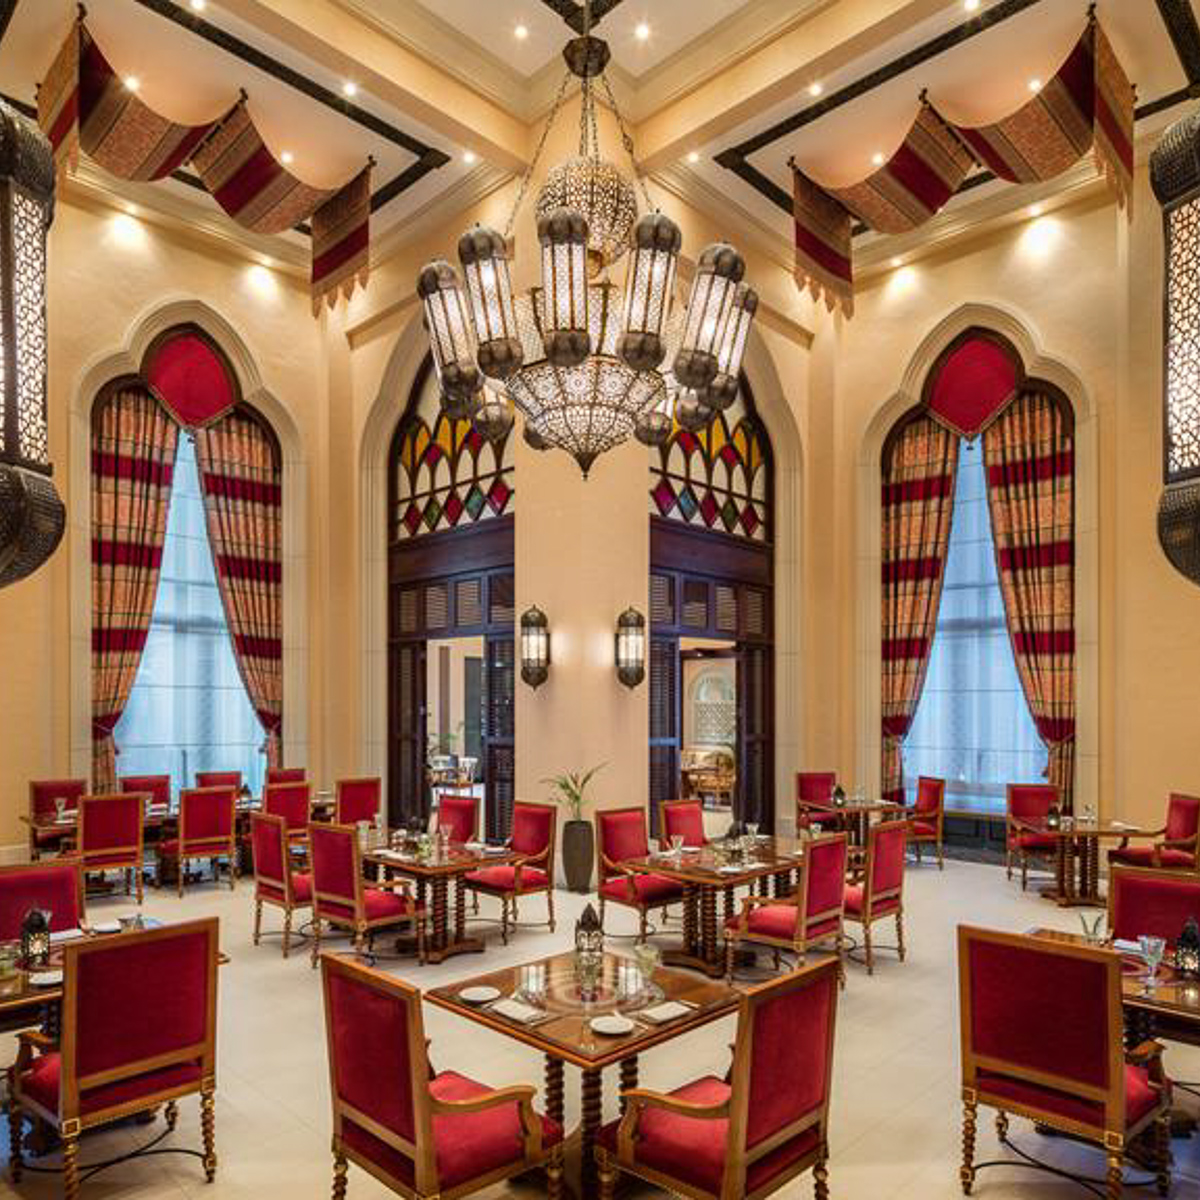 mezlai-emirates-restaurant-abu-dhabi_i.jpg;width=1024;height=576;mode=crop;anchor=middlecenter;autorotate=true;quality=90;scale=both;progressive=true;encoder=freeimage